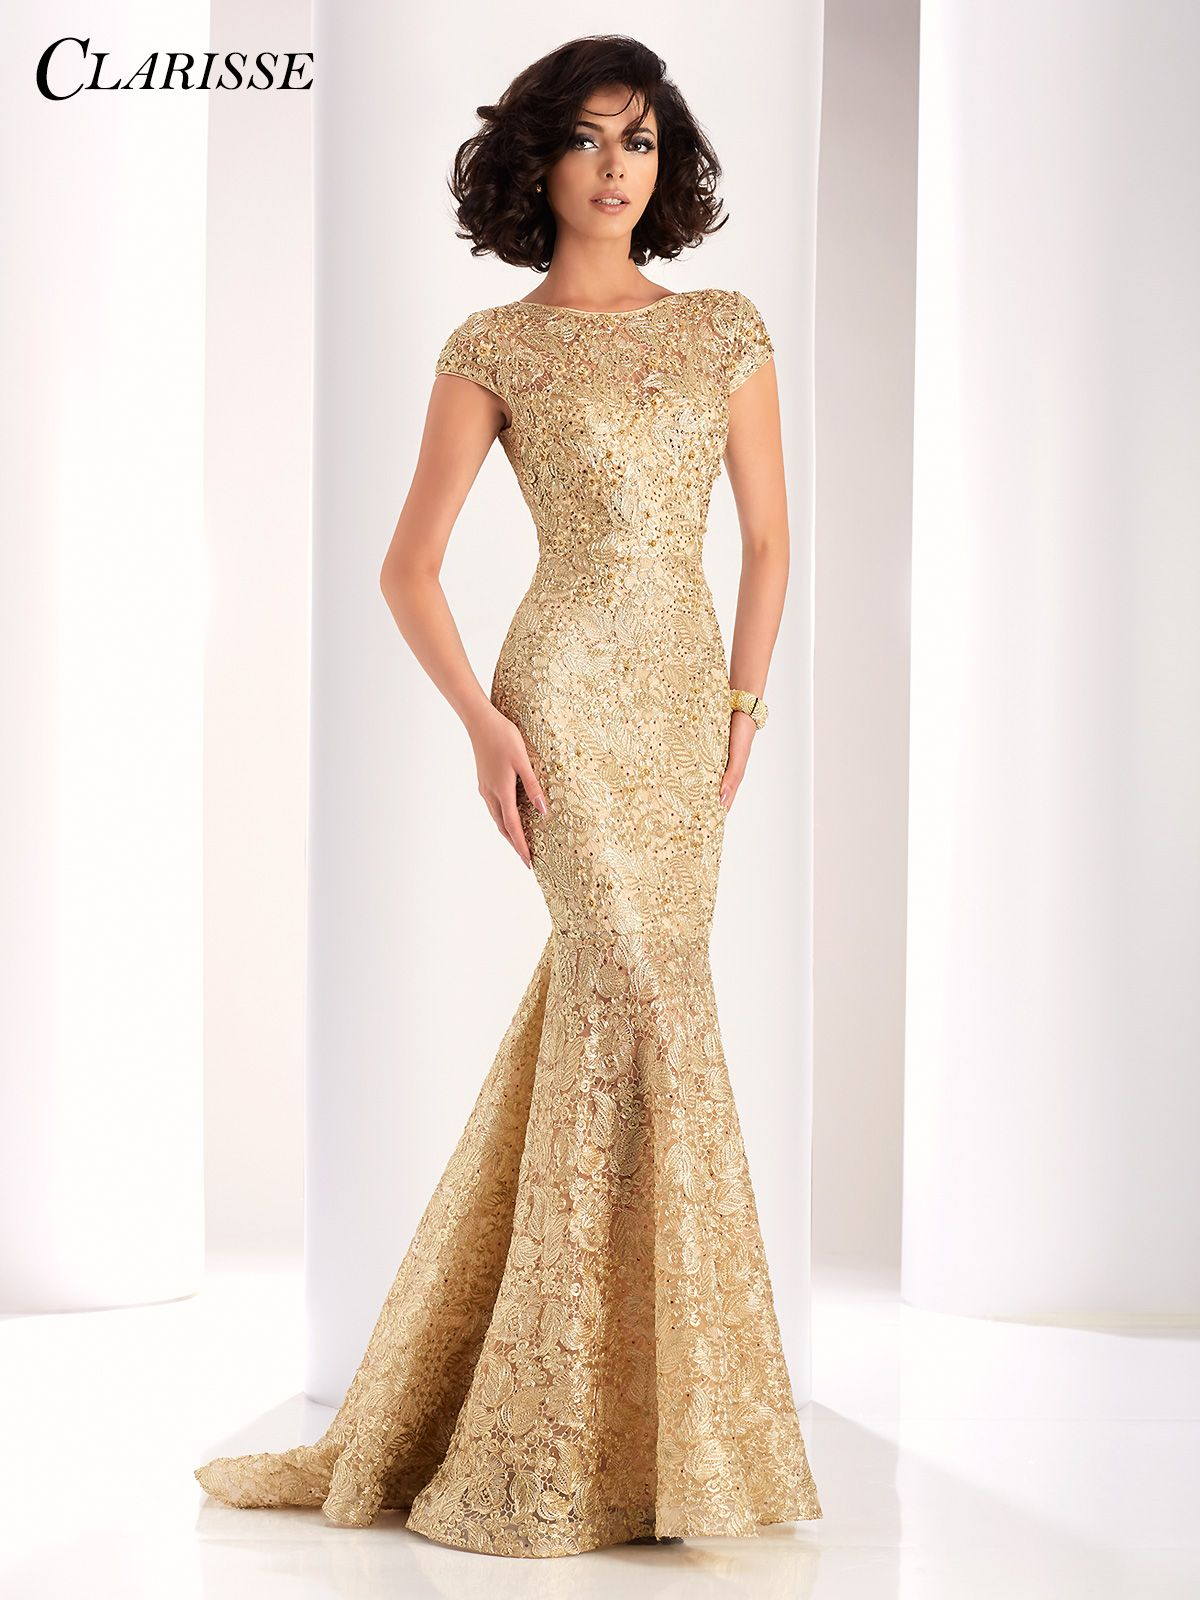 Clarisse Gold Lace Mermaid Evening Gown 4852 bb217120ee18